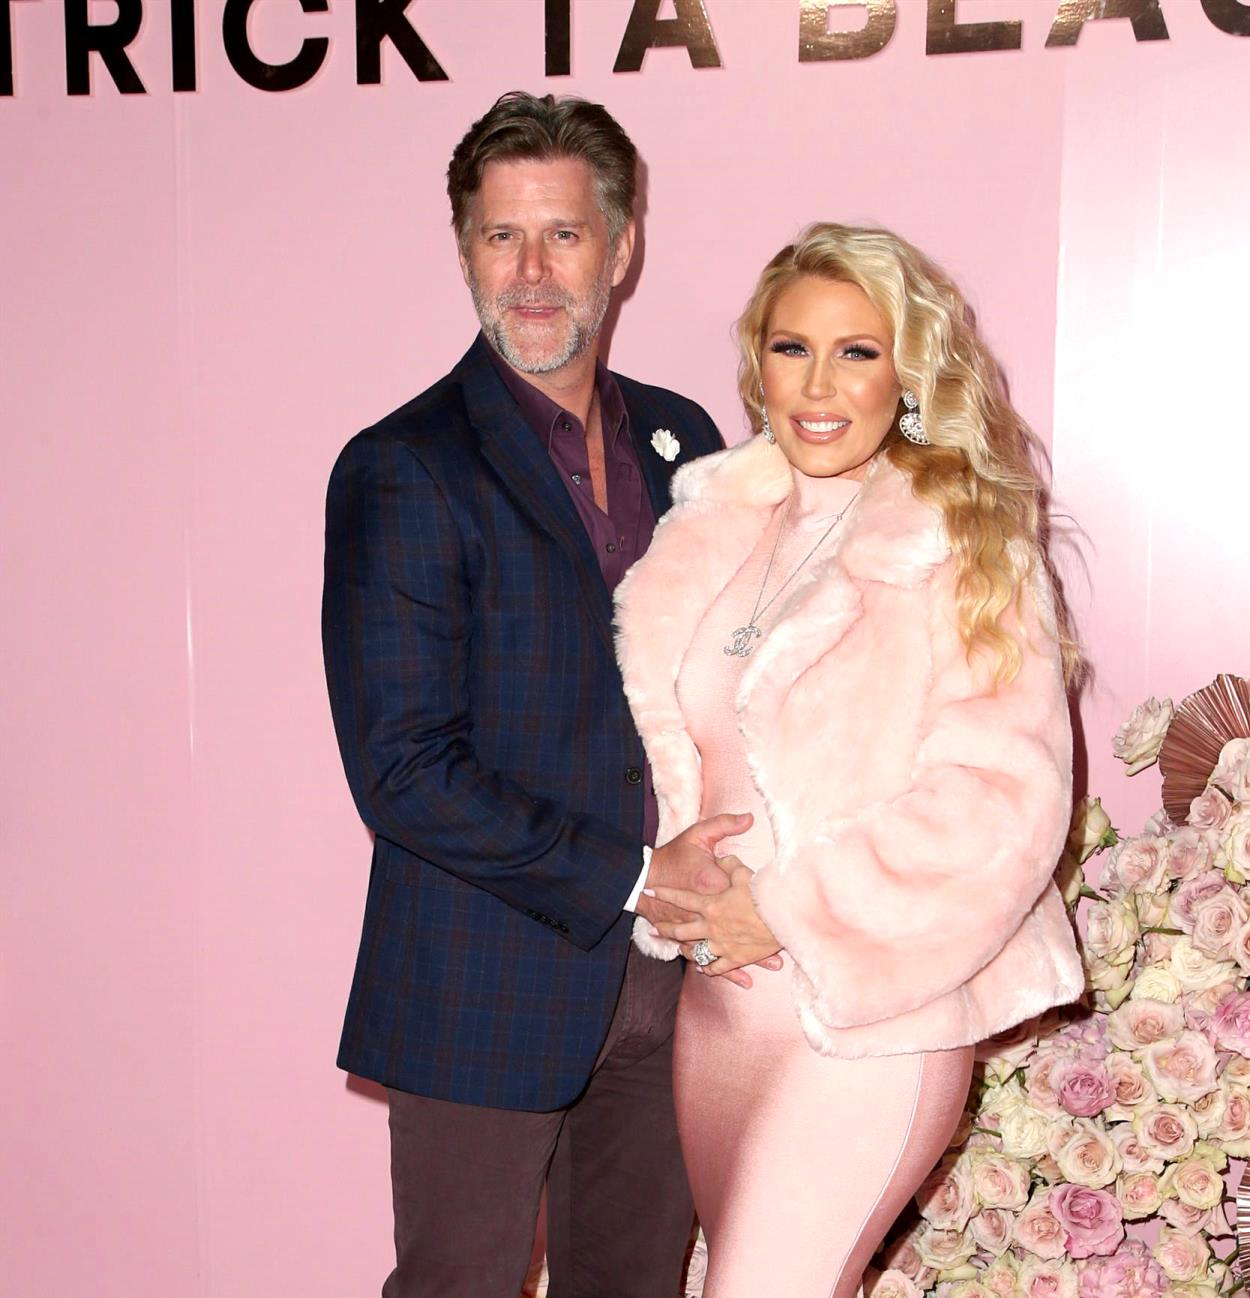 REPORT: Former RHOC Star Gretchen Rossi is Facing Foreclosure on Her Orange County Home